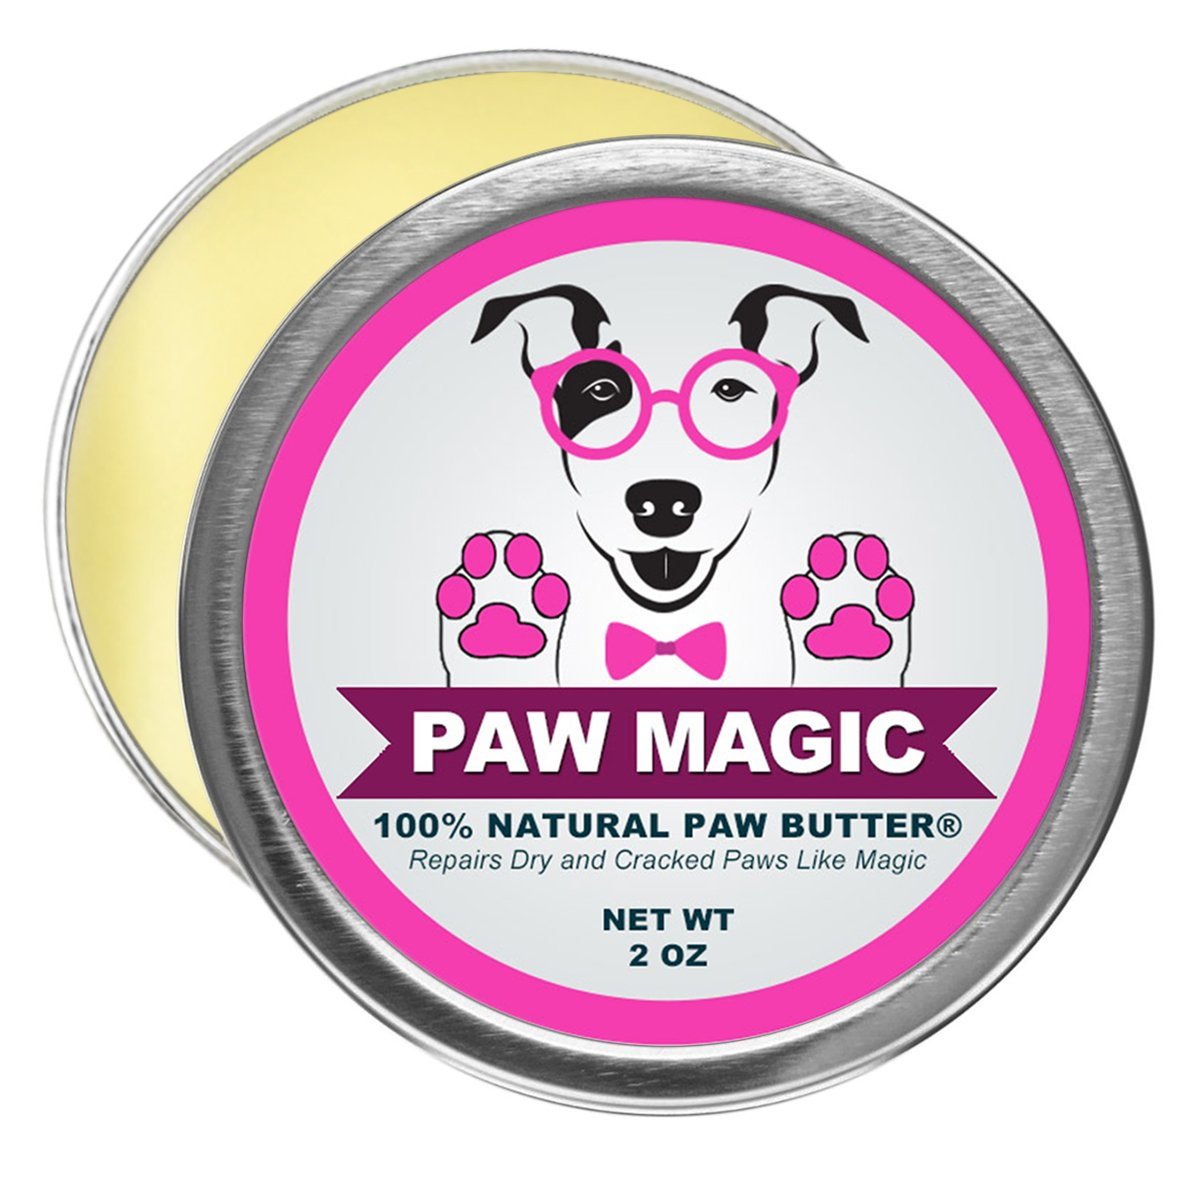 Paw Magic: Organic Natural Dog Paw Butter Moisturizer - Proven To Cure and Soothes Your Dog's Rough, Cracked, and Dry Paws Caused By Hyperkeratosis - 2 Ounce